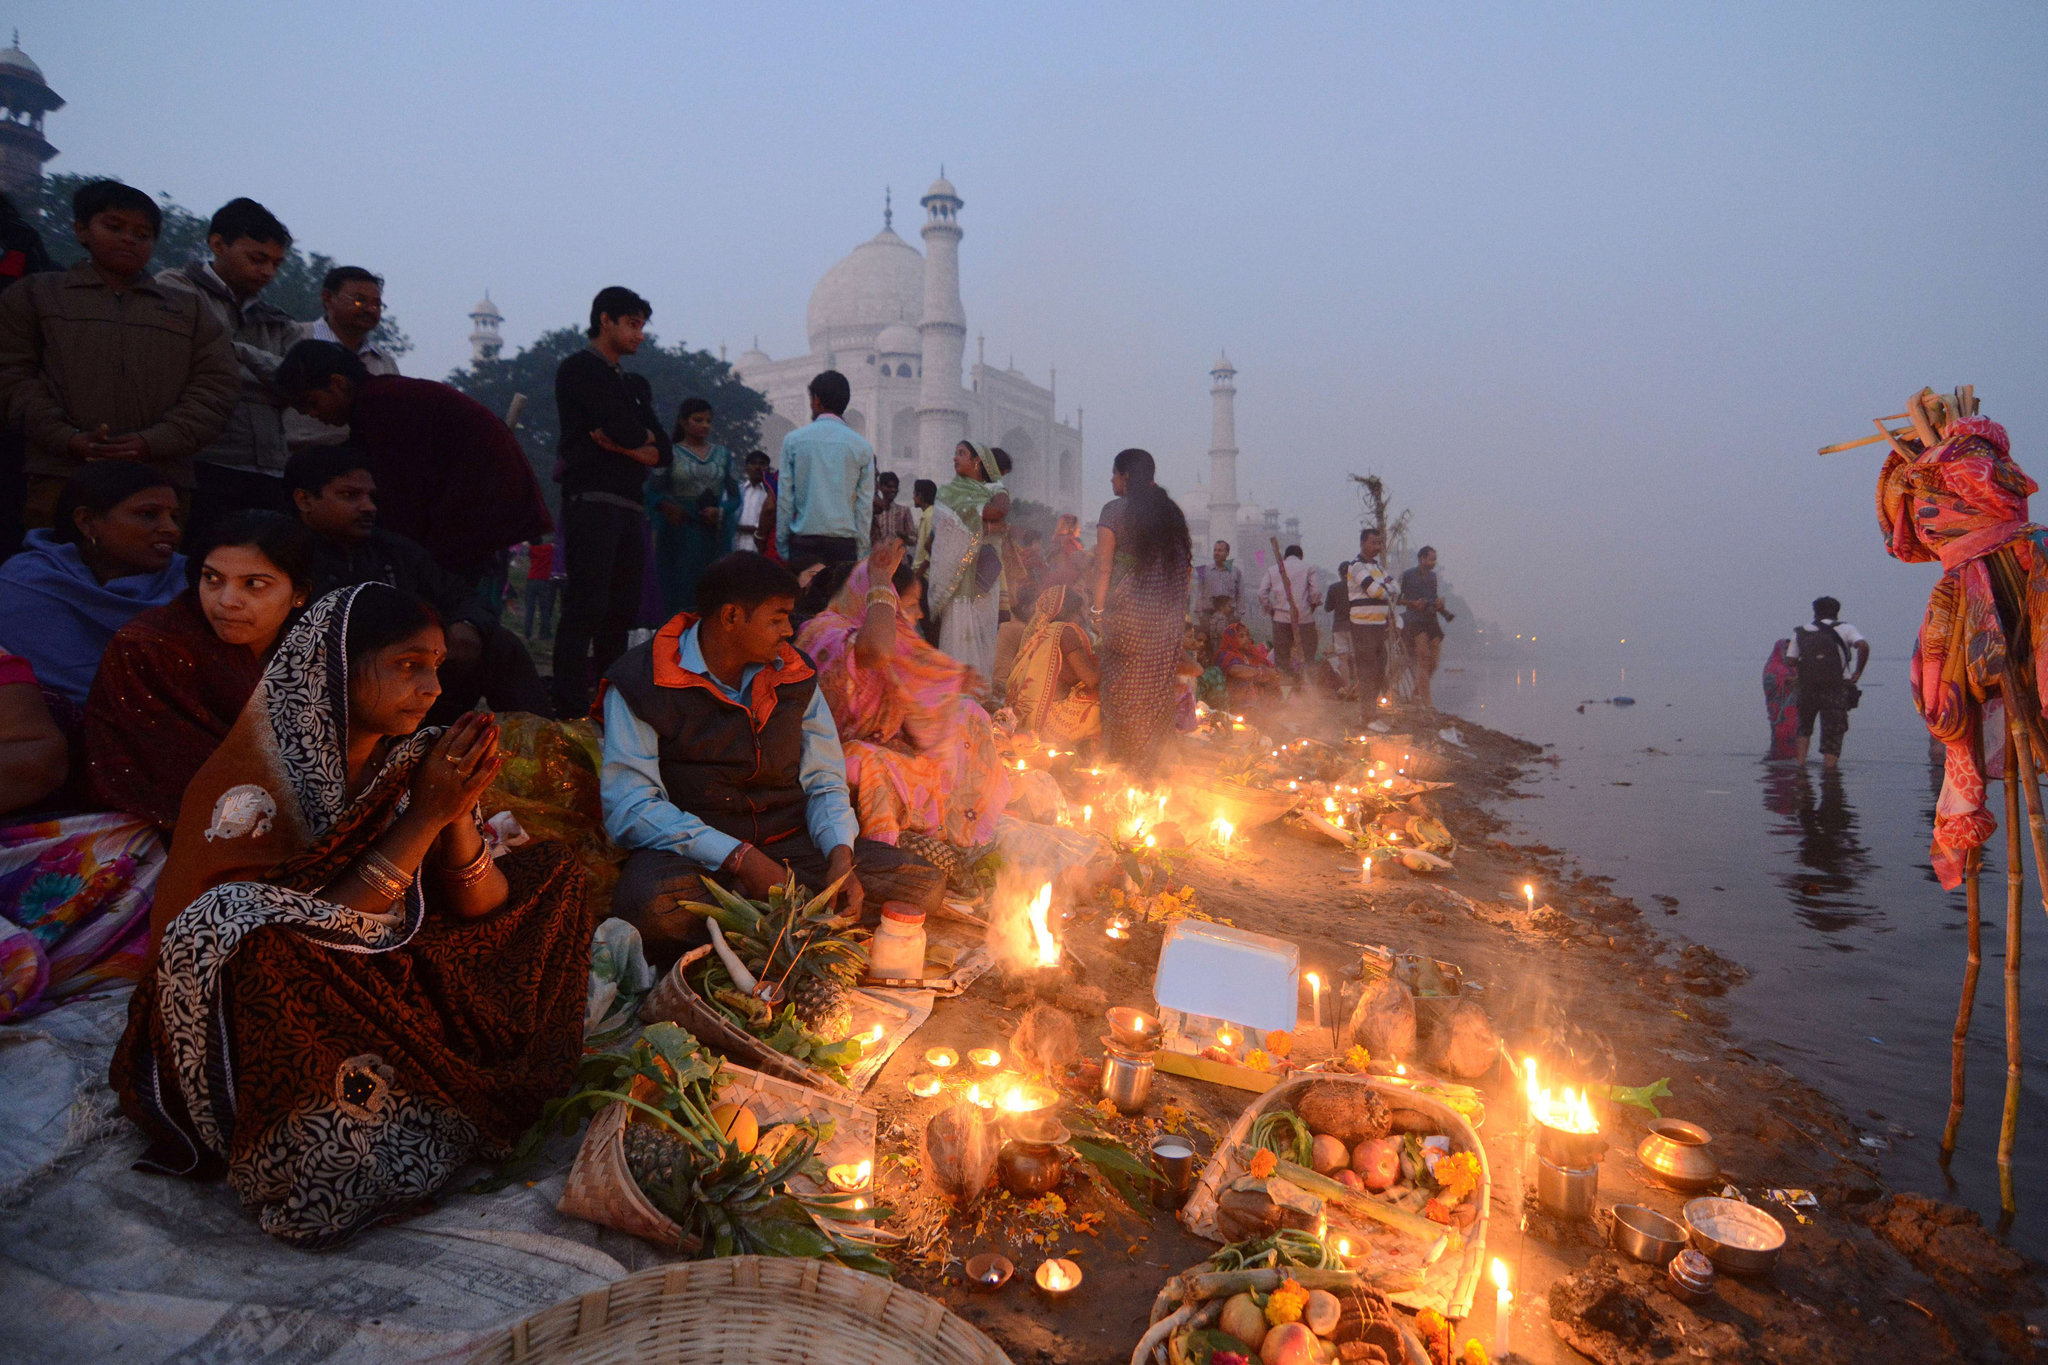 Indian Hindu devotees offer prayers on t...Indian Hindu devotees offer prayers on the banks of the Yamuna river as the landmark Taj Mahal monument is seen in the background during daybreak in Agra on October 30, 2014. Devotees pay obeisance to both the rising and the setting sun in the Chhath festival when people express their thanks and seek the blessings of the forces of nature, mainly the sun and river. AFP PHOTO/ PUNIT PARANJPESTRDEL/AFP/Getty Images